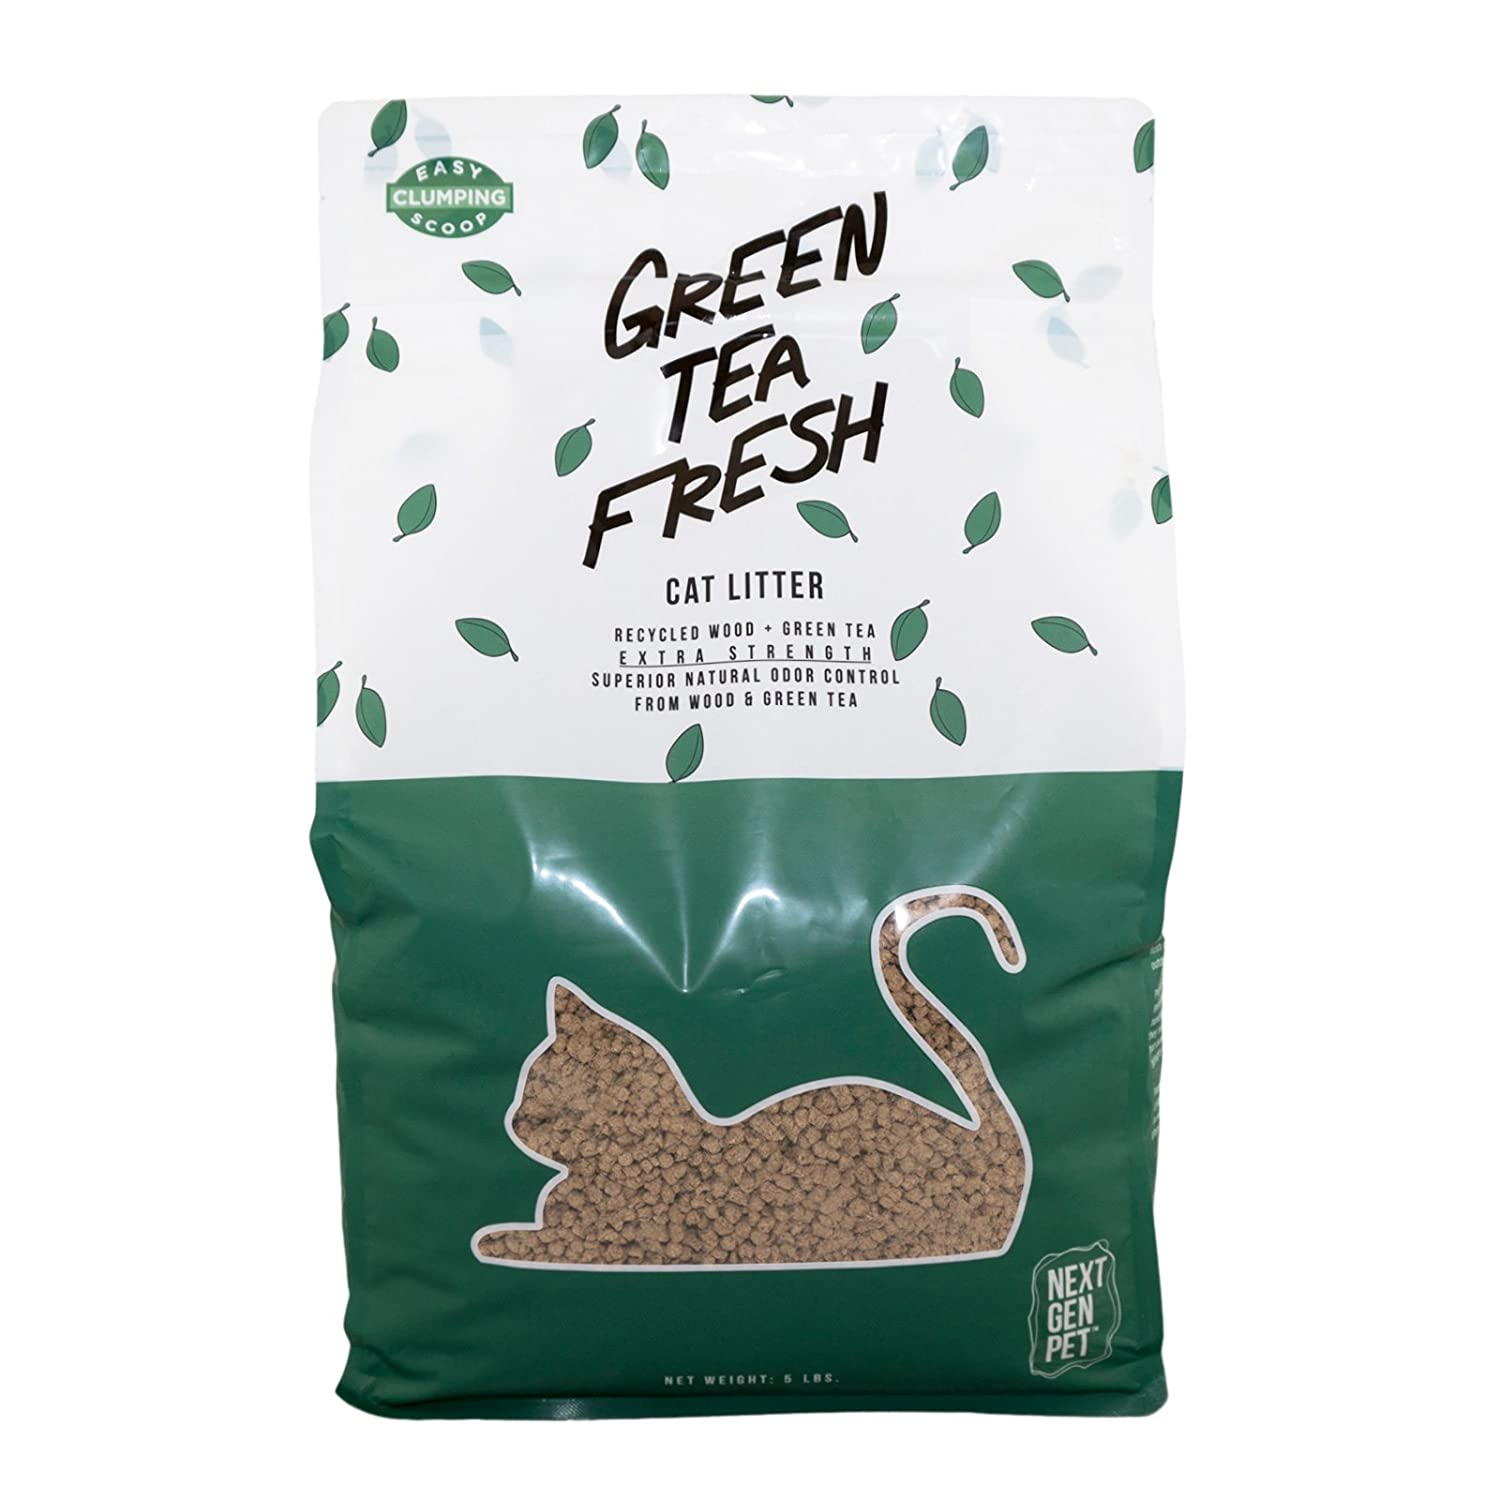 Next Gen All Natural Green Tea Leaves Cat Litter